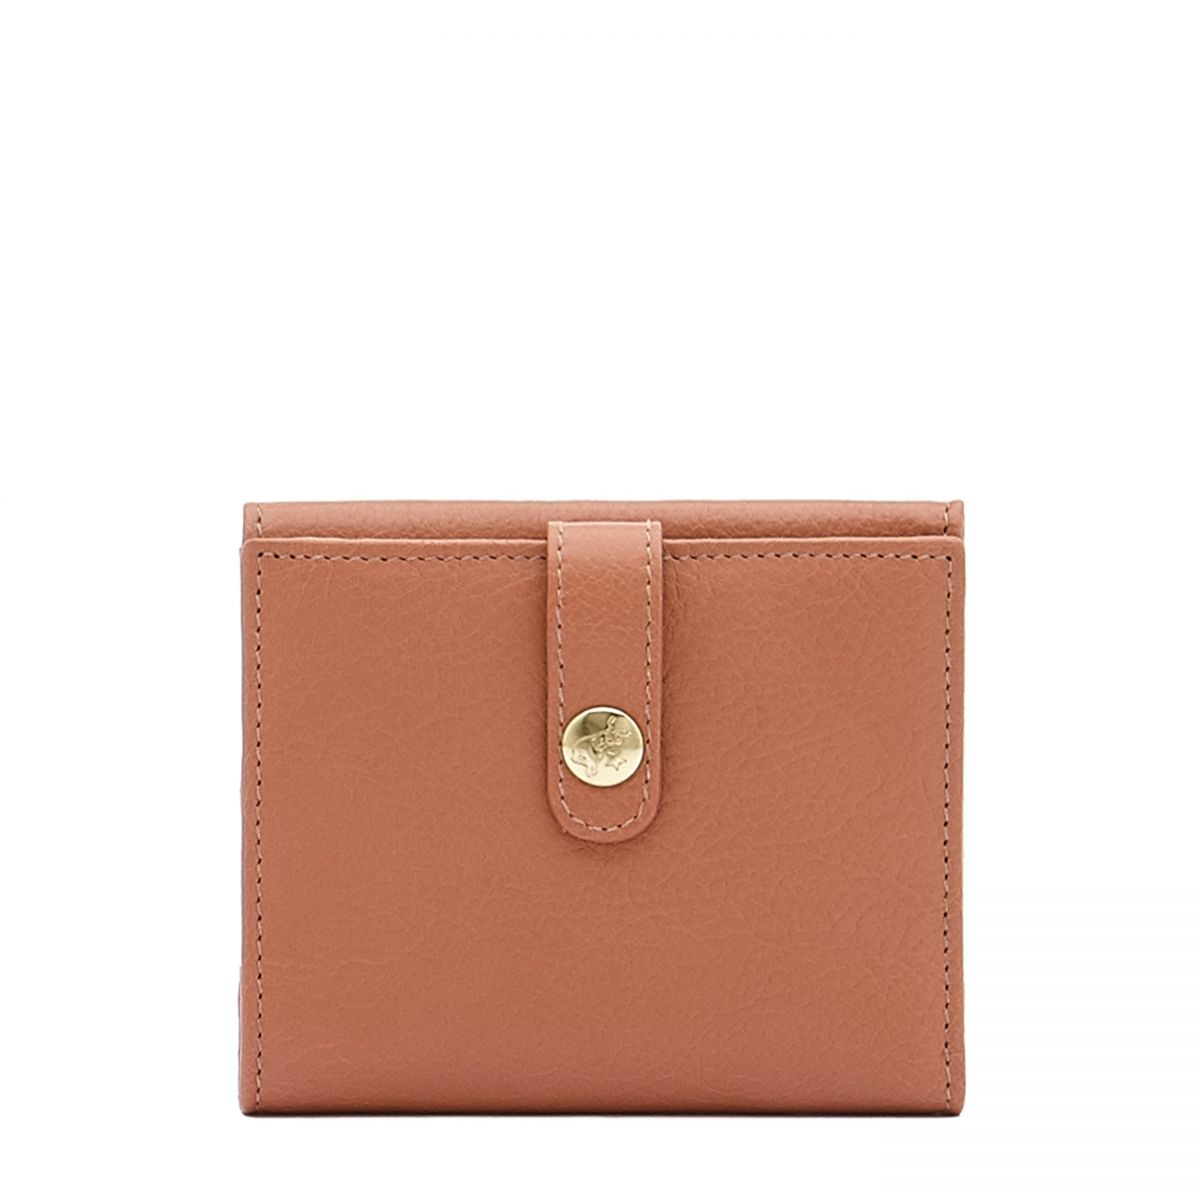 Women's Wallet  in Cowhide Leather SMW044 color Pink Pepper | Details